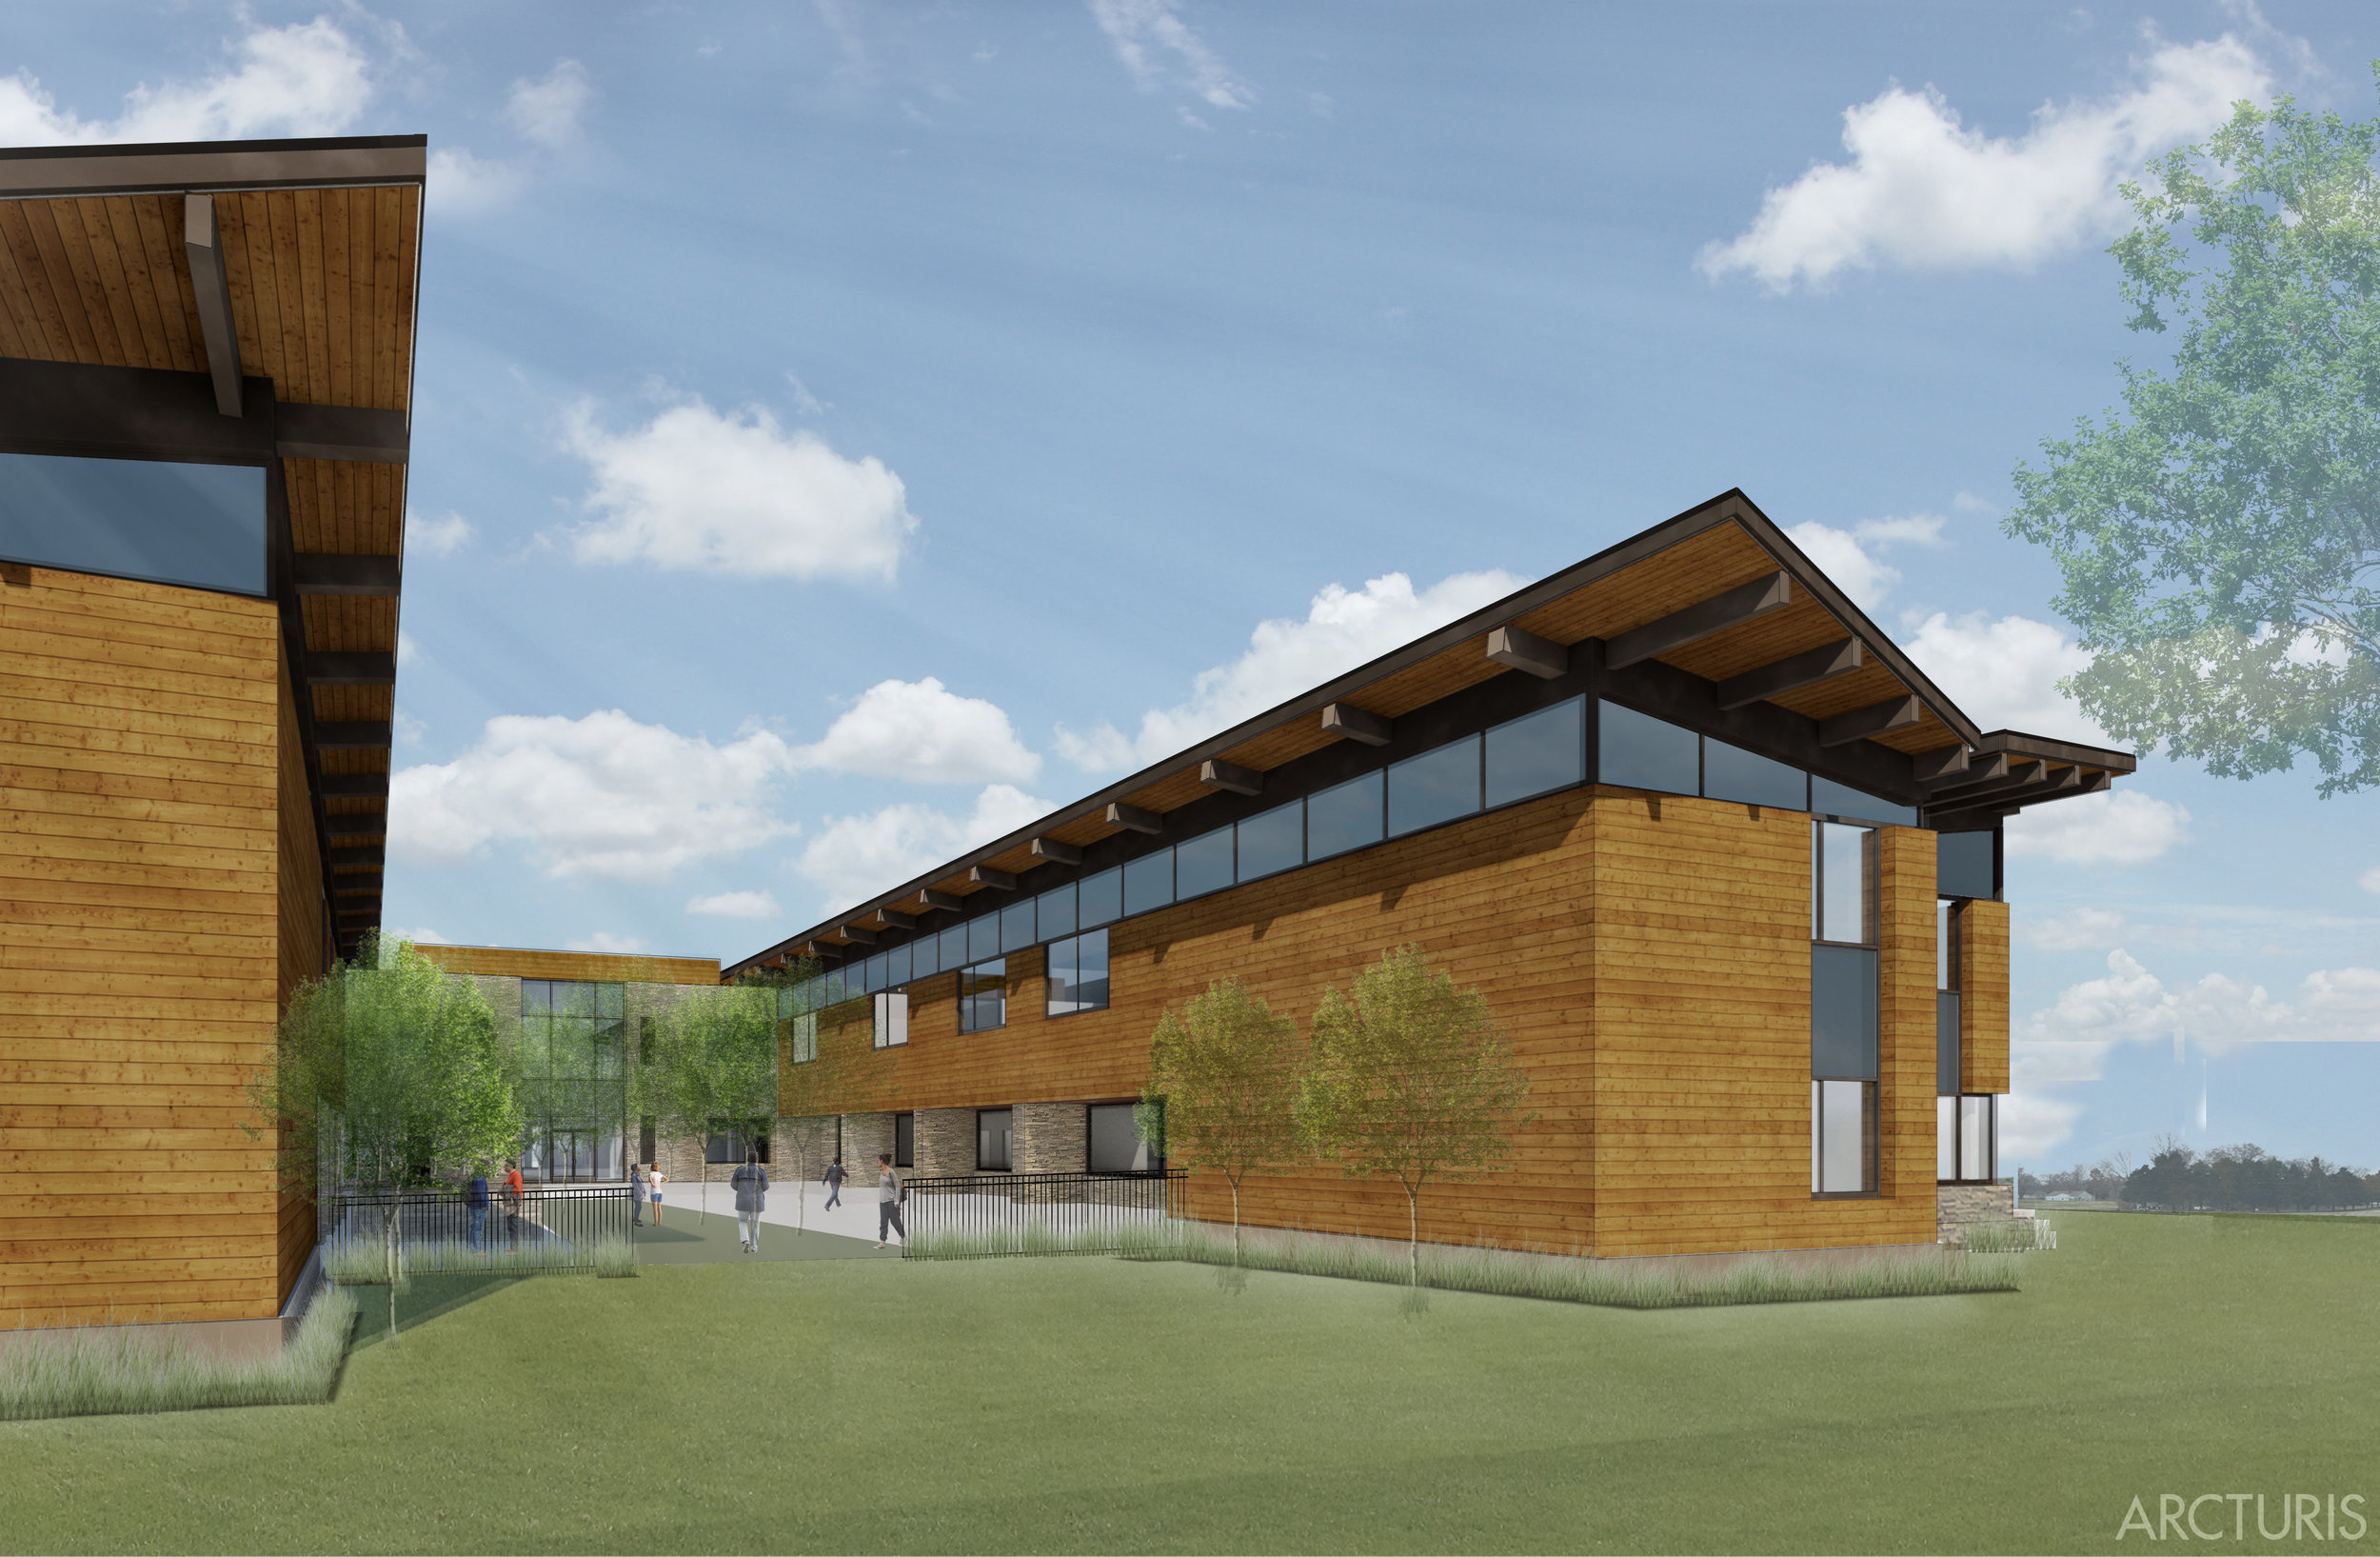 "The Arcturis team worked closely with Harris House to incorporate design practices for healing that support their treatment philosophy of ""integrated healing of mind, body, and spirit."" This new state of the art facility will allow Harris House to extend their reach in the region and expand their efforts towards healing."